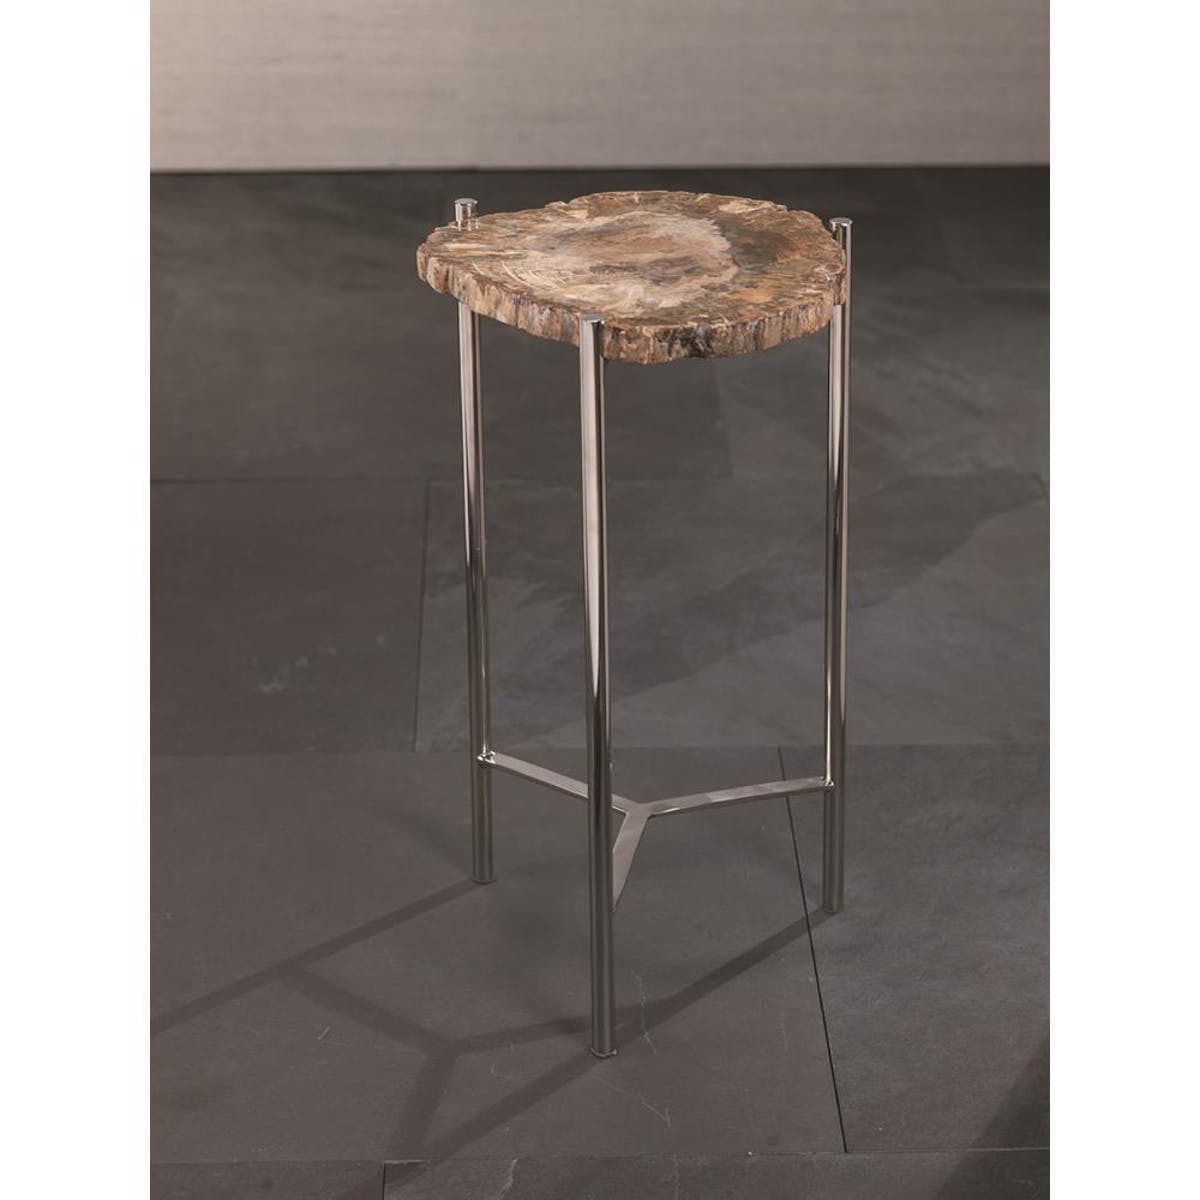 zodax pierce petrified wood accent table inch tall modish metal tap expand corner curio sofa with storage drawers wicker patio furniture sets timber coffee rustic side occasional